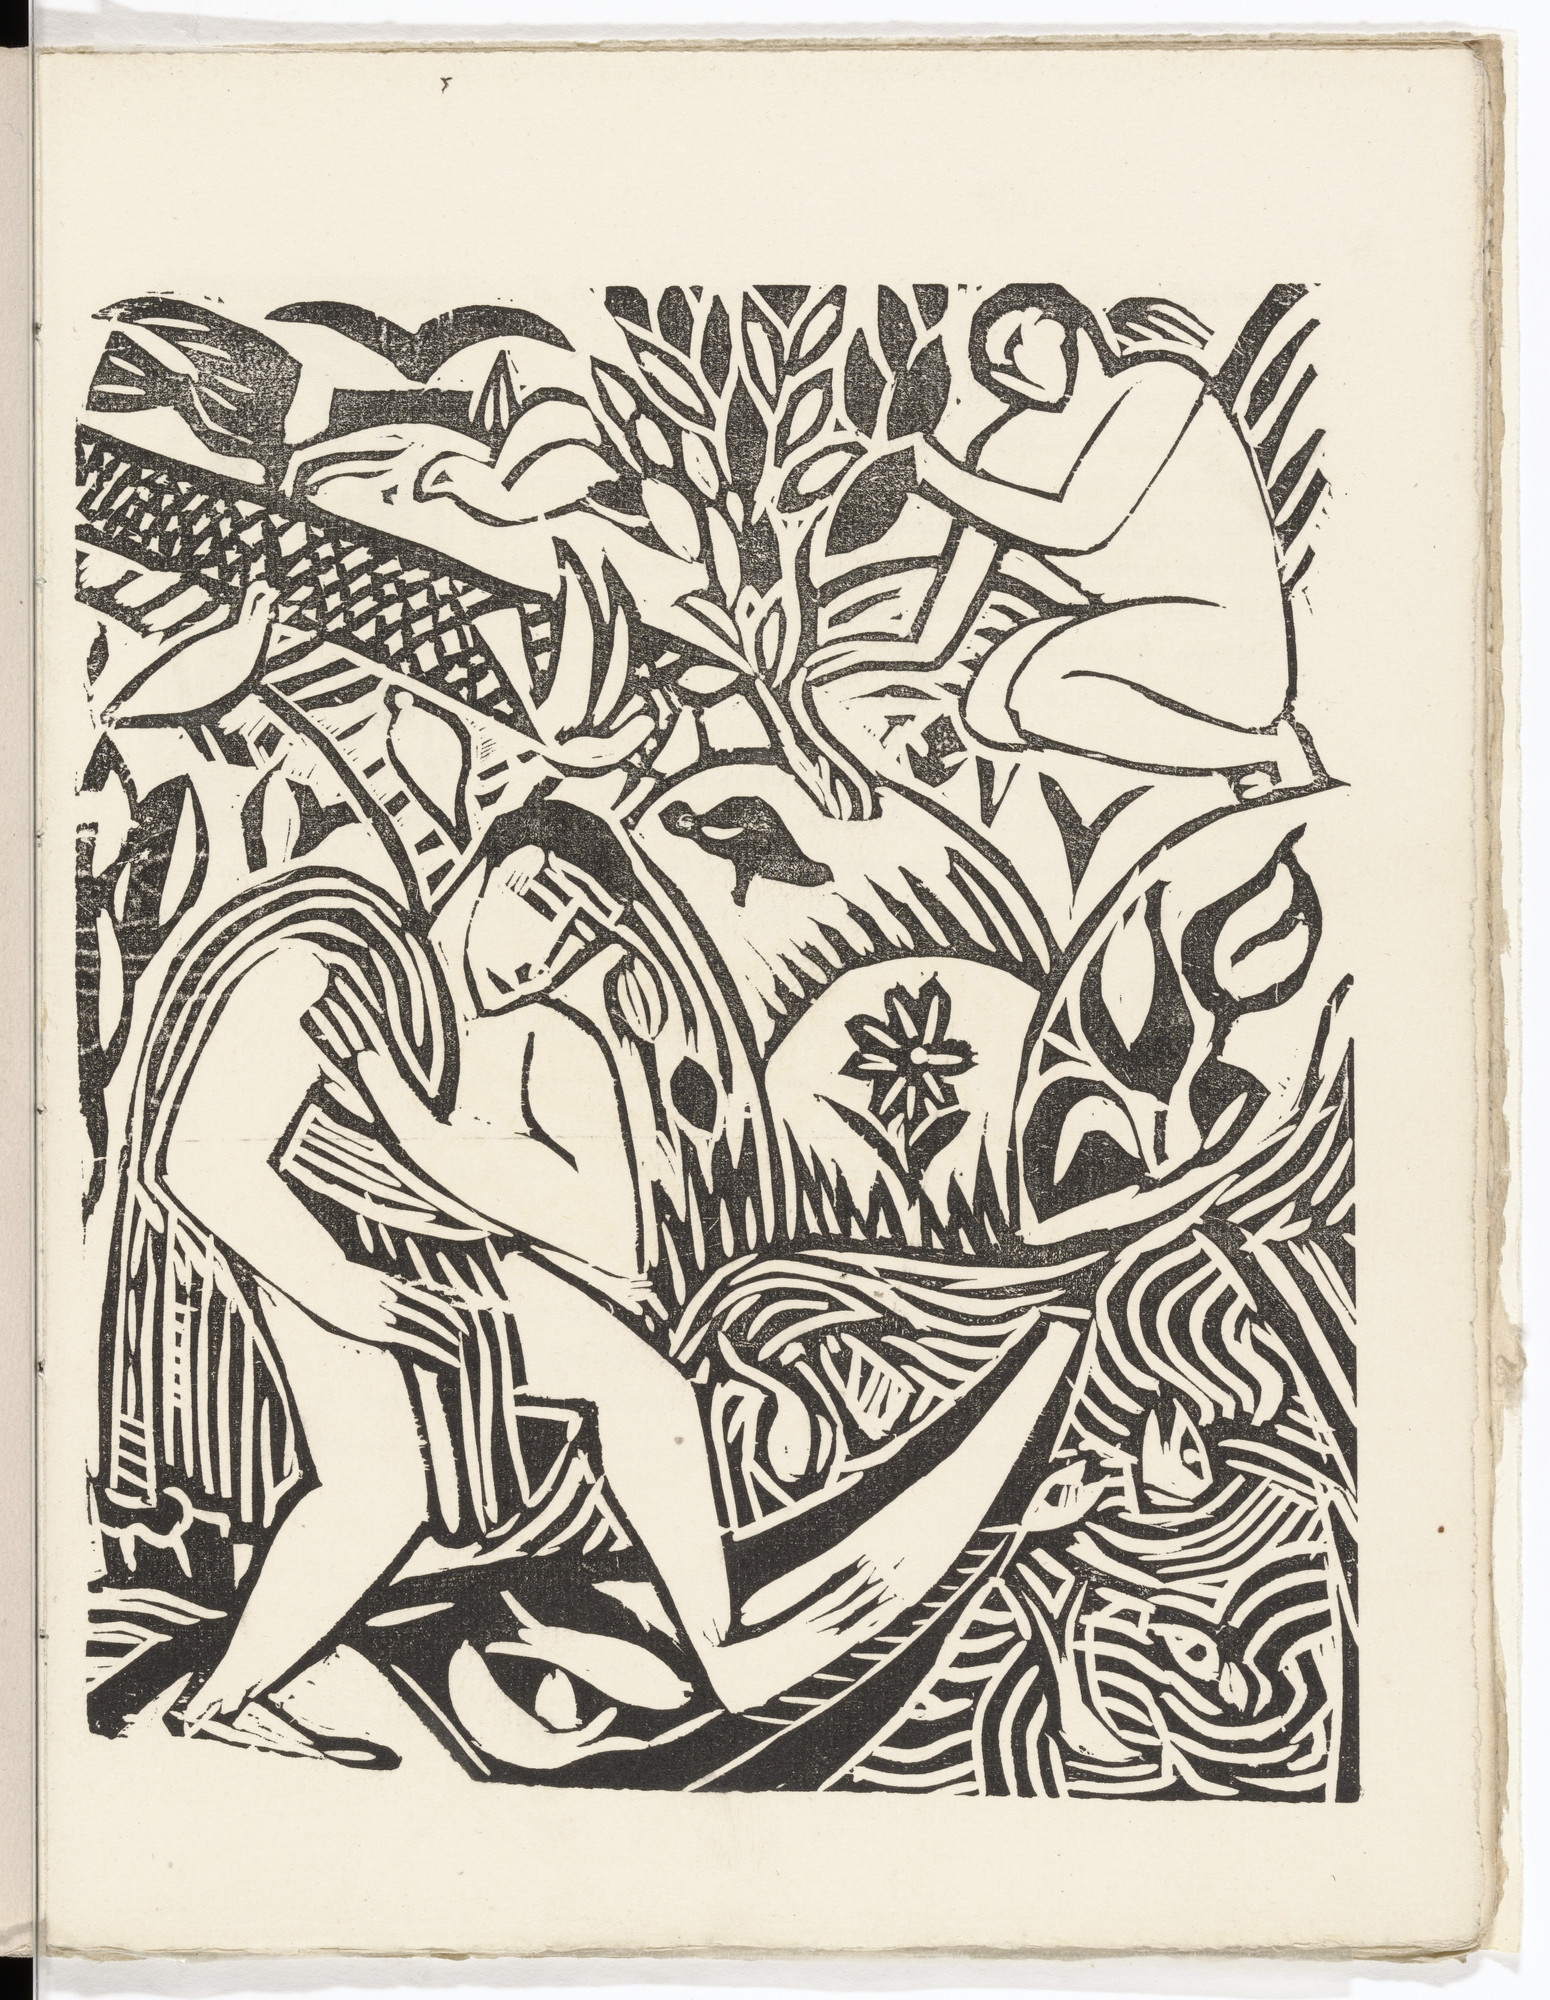 André Derain. Plate (folio 26) from L'Enchanteur pourrissant. 1909